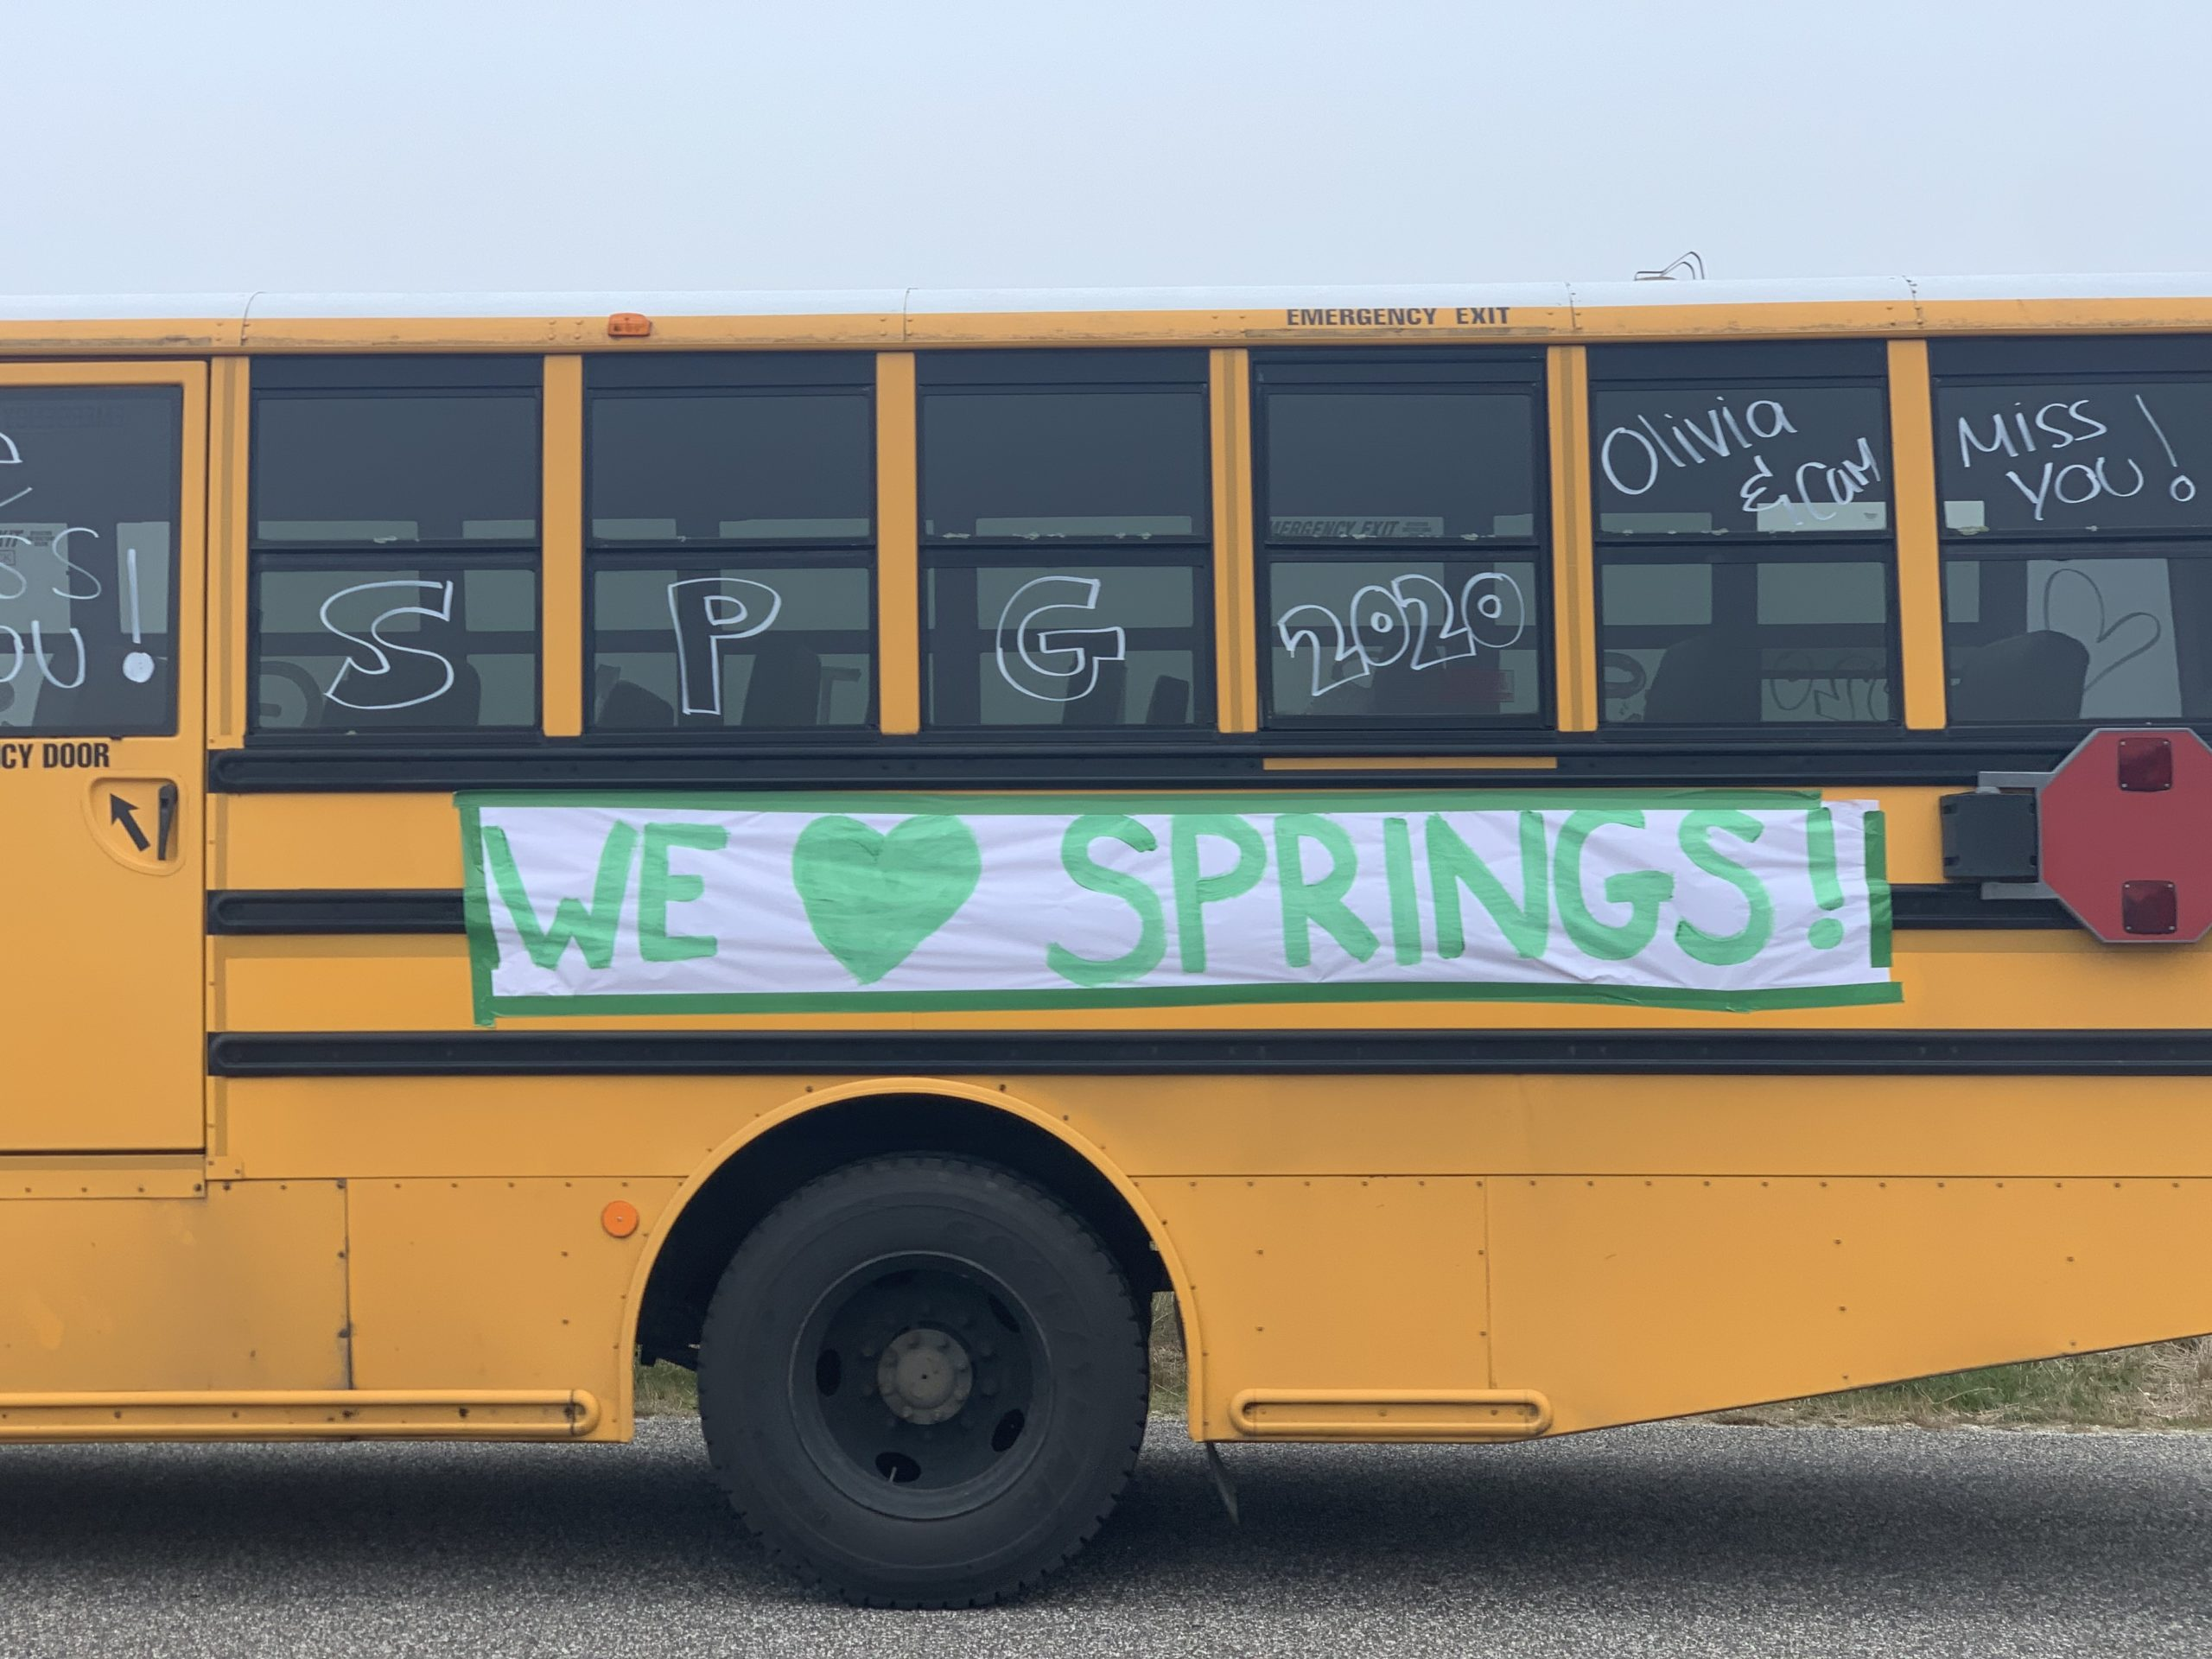 School buses and teacher's vehciles were adorned with messages of school spirit during Friday's Spirit Drive around Springs.